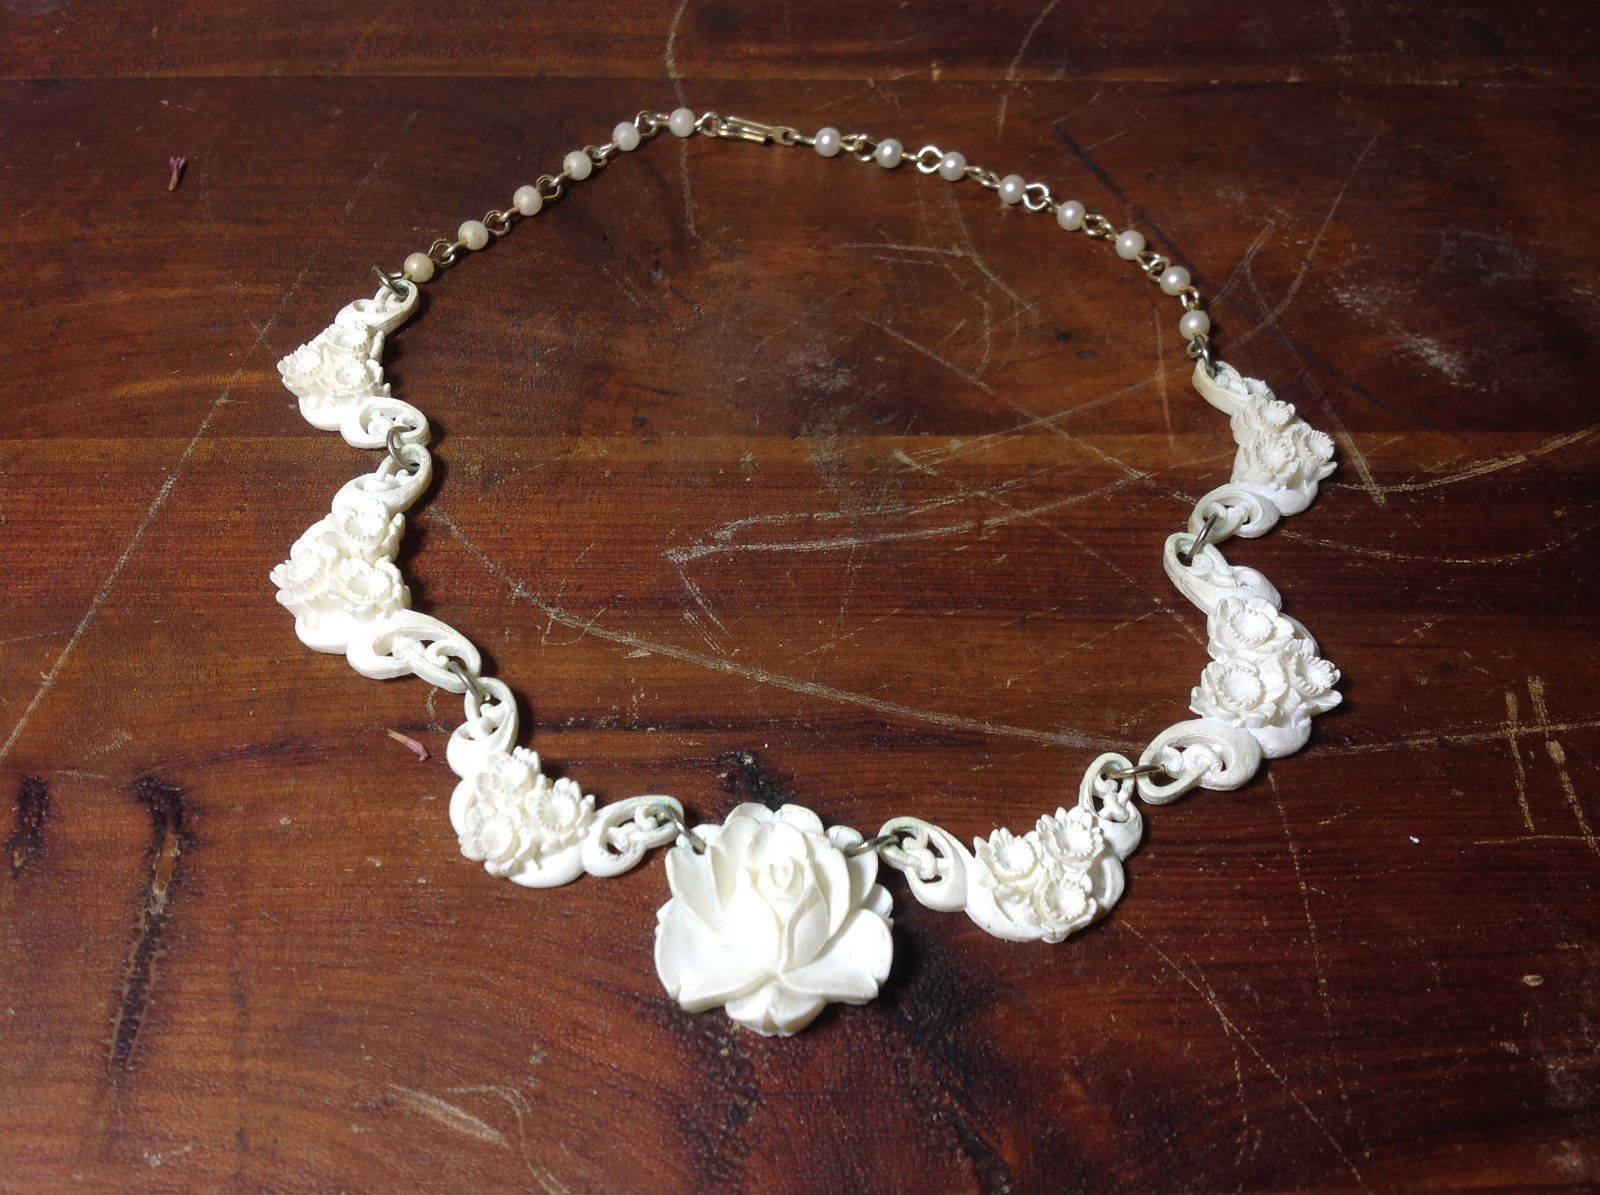 Intricate White Carved Necklace Flowers Adjustable Copper Alloy Links vintage